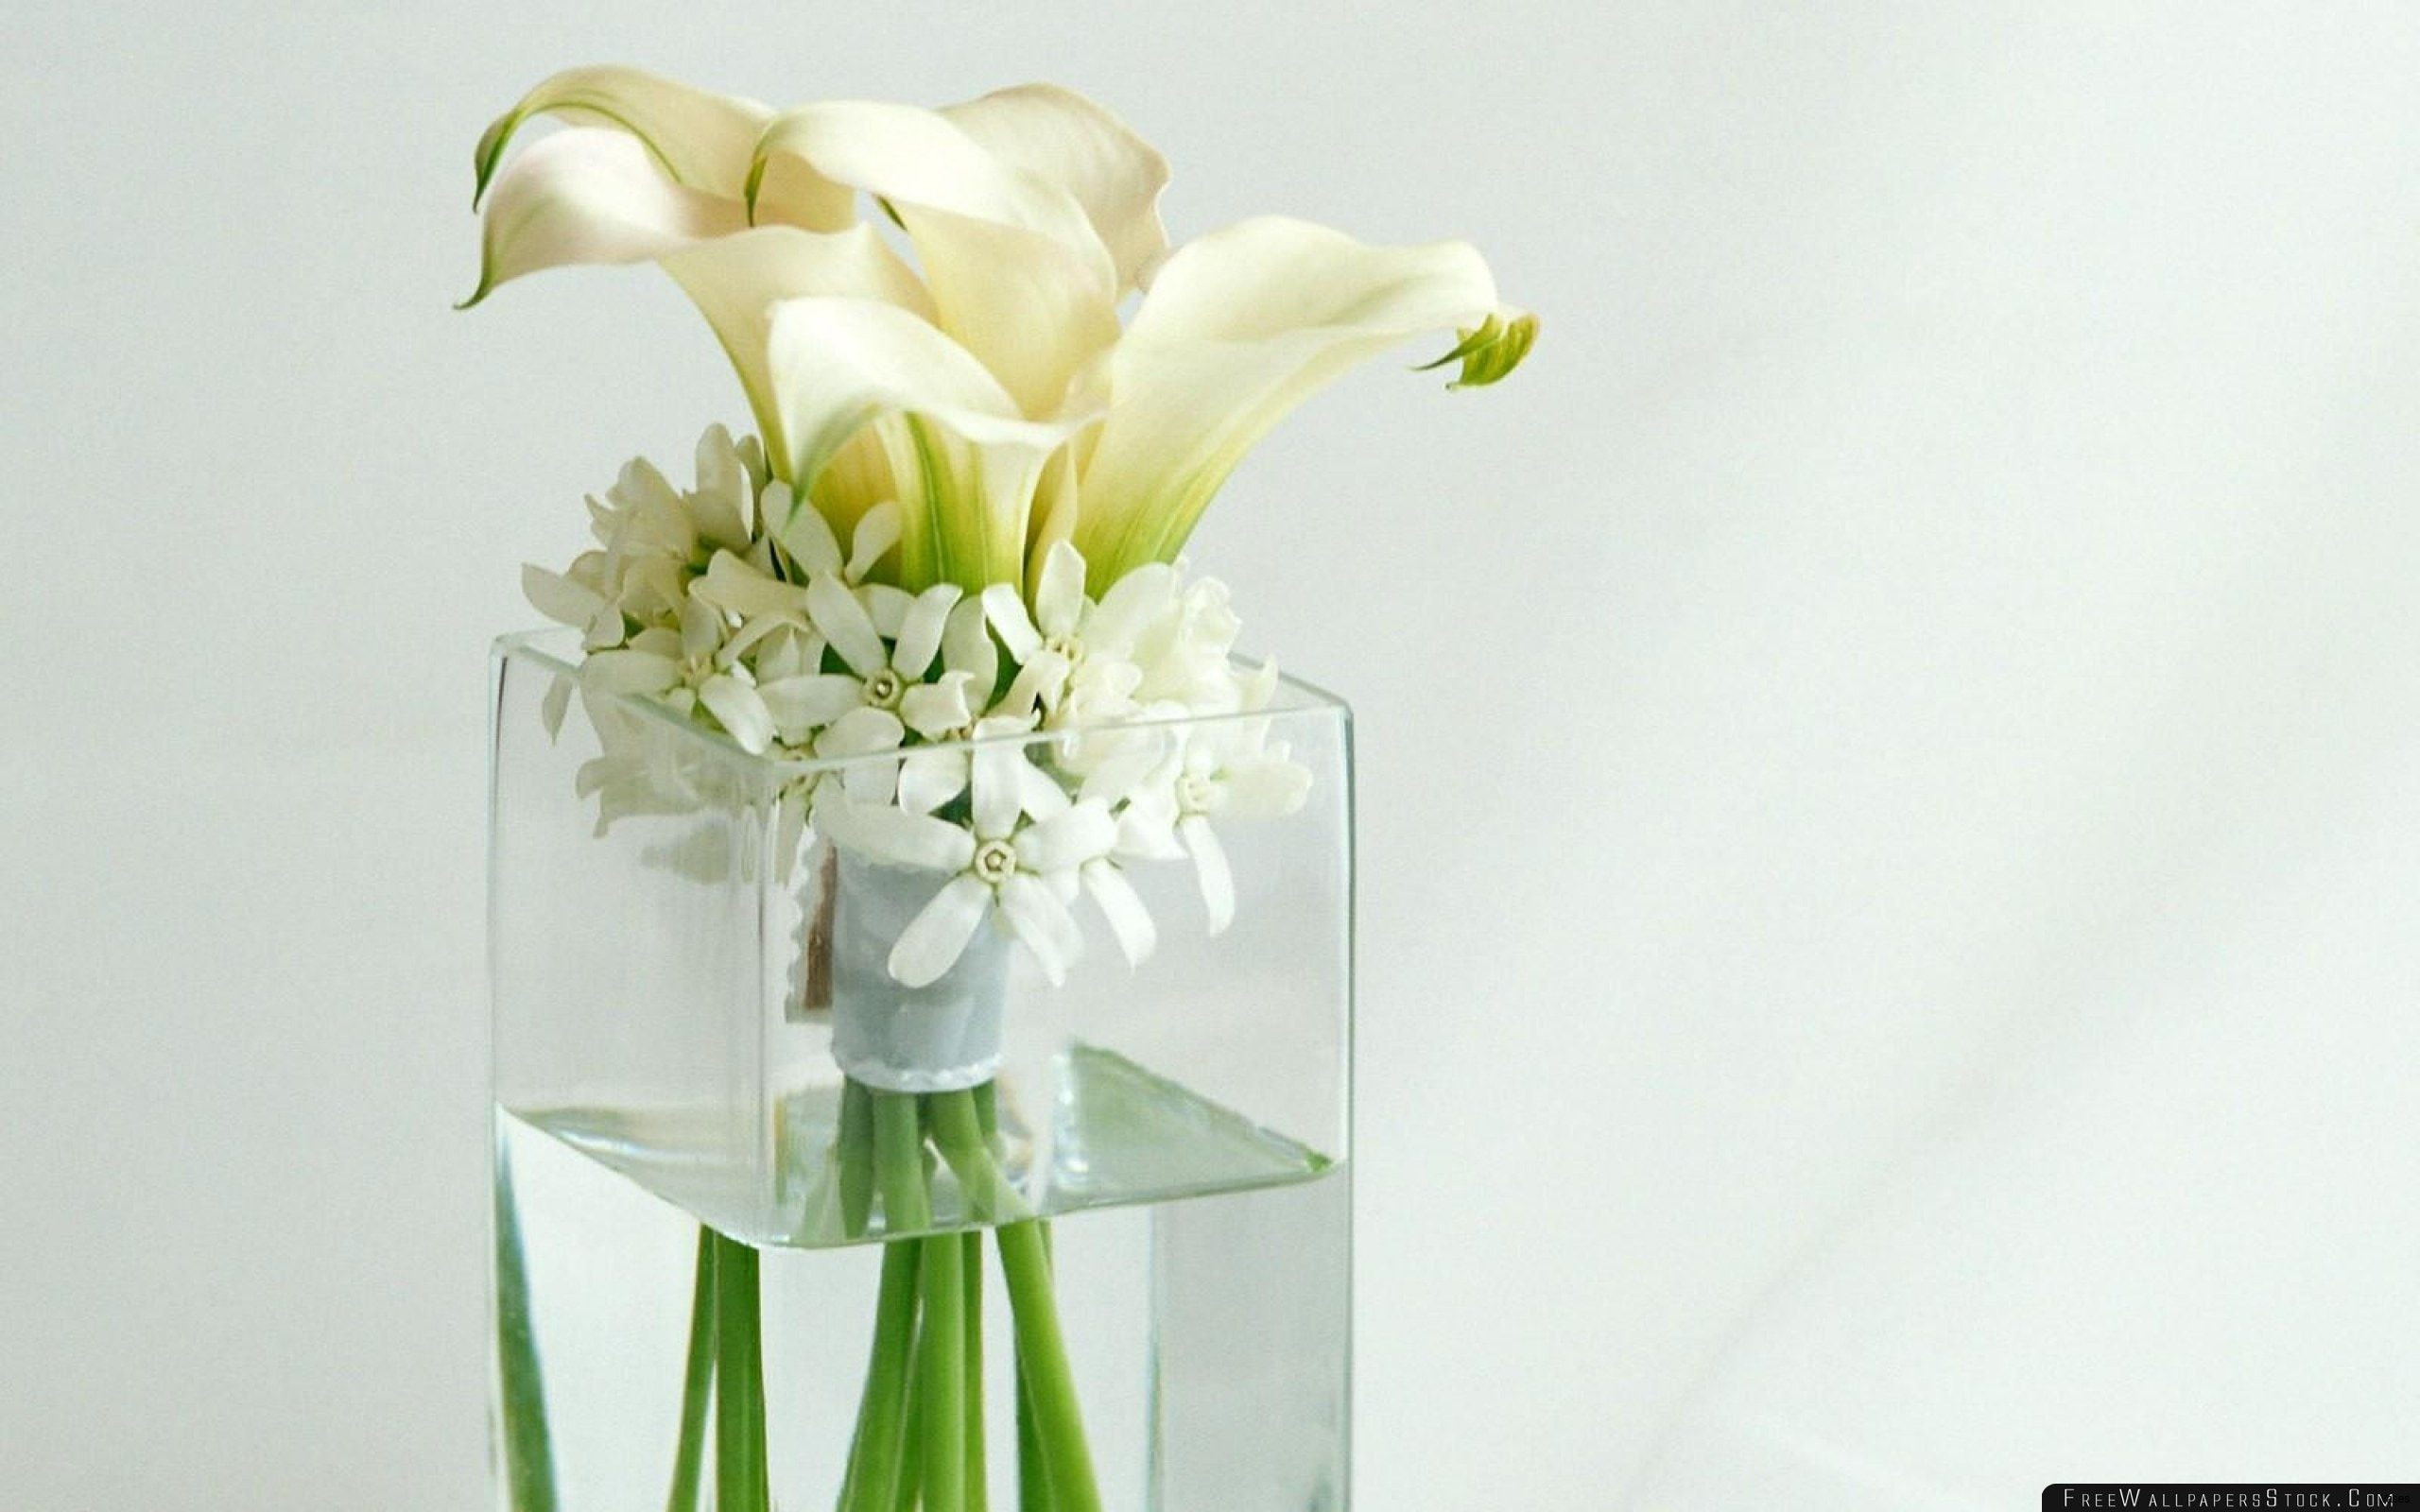 Mercury Glass Bowl Vase Of Flowers In Glass Vase New Tall Vase Centerpiece Ideas Vases Flowers with Regard to Flowers In Glass Vase New Tall Vase Centerpiece Ideas Vases Flowers In Water 0d Artificial